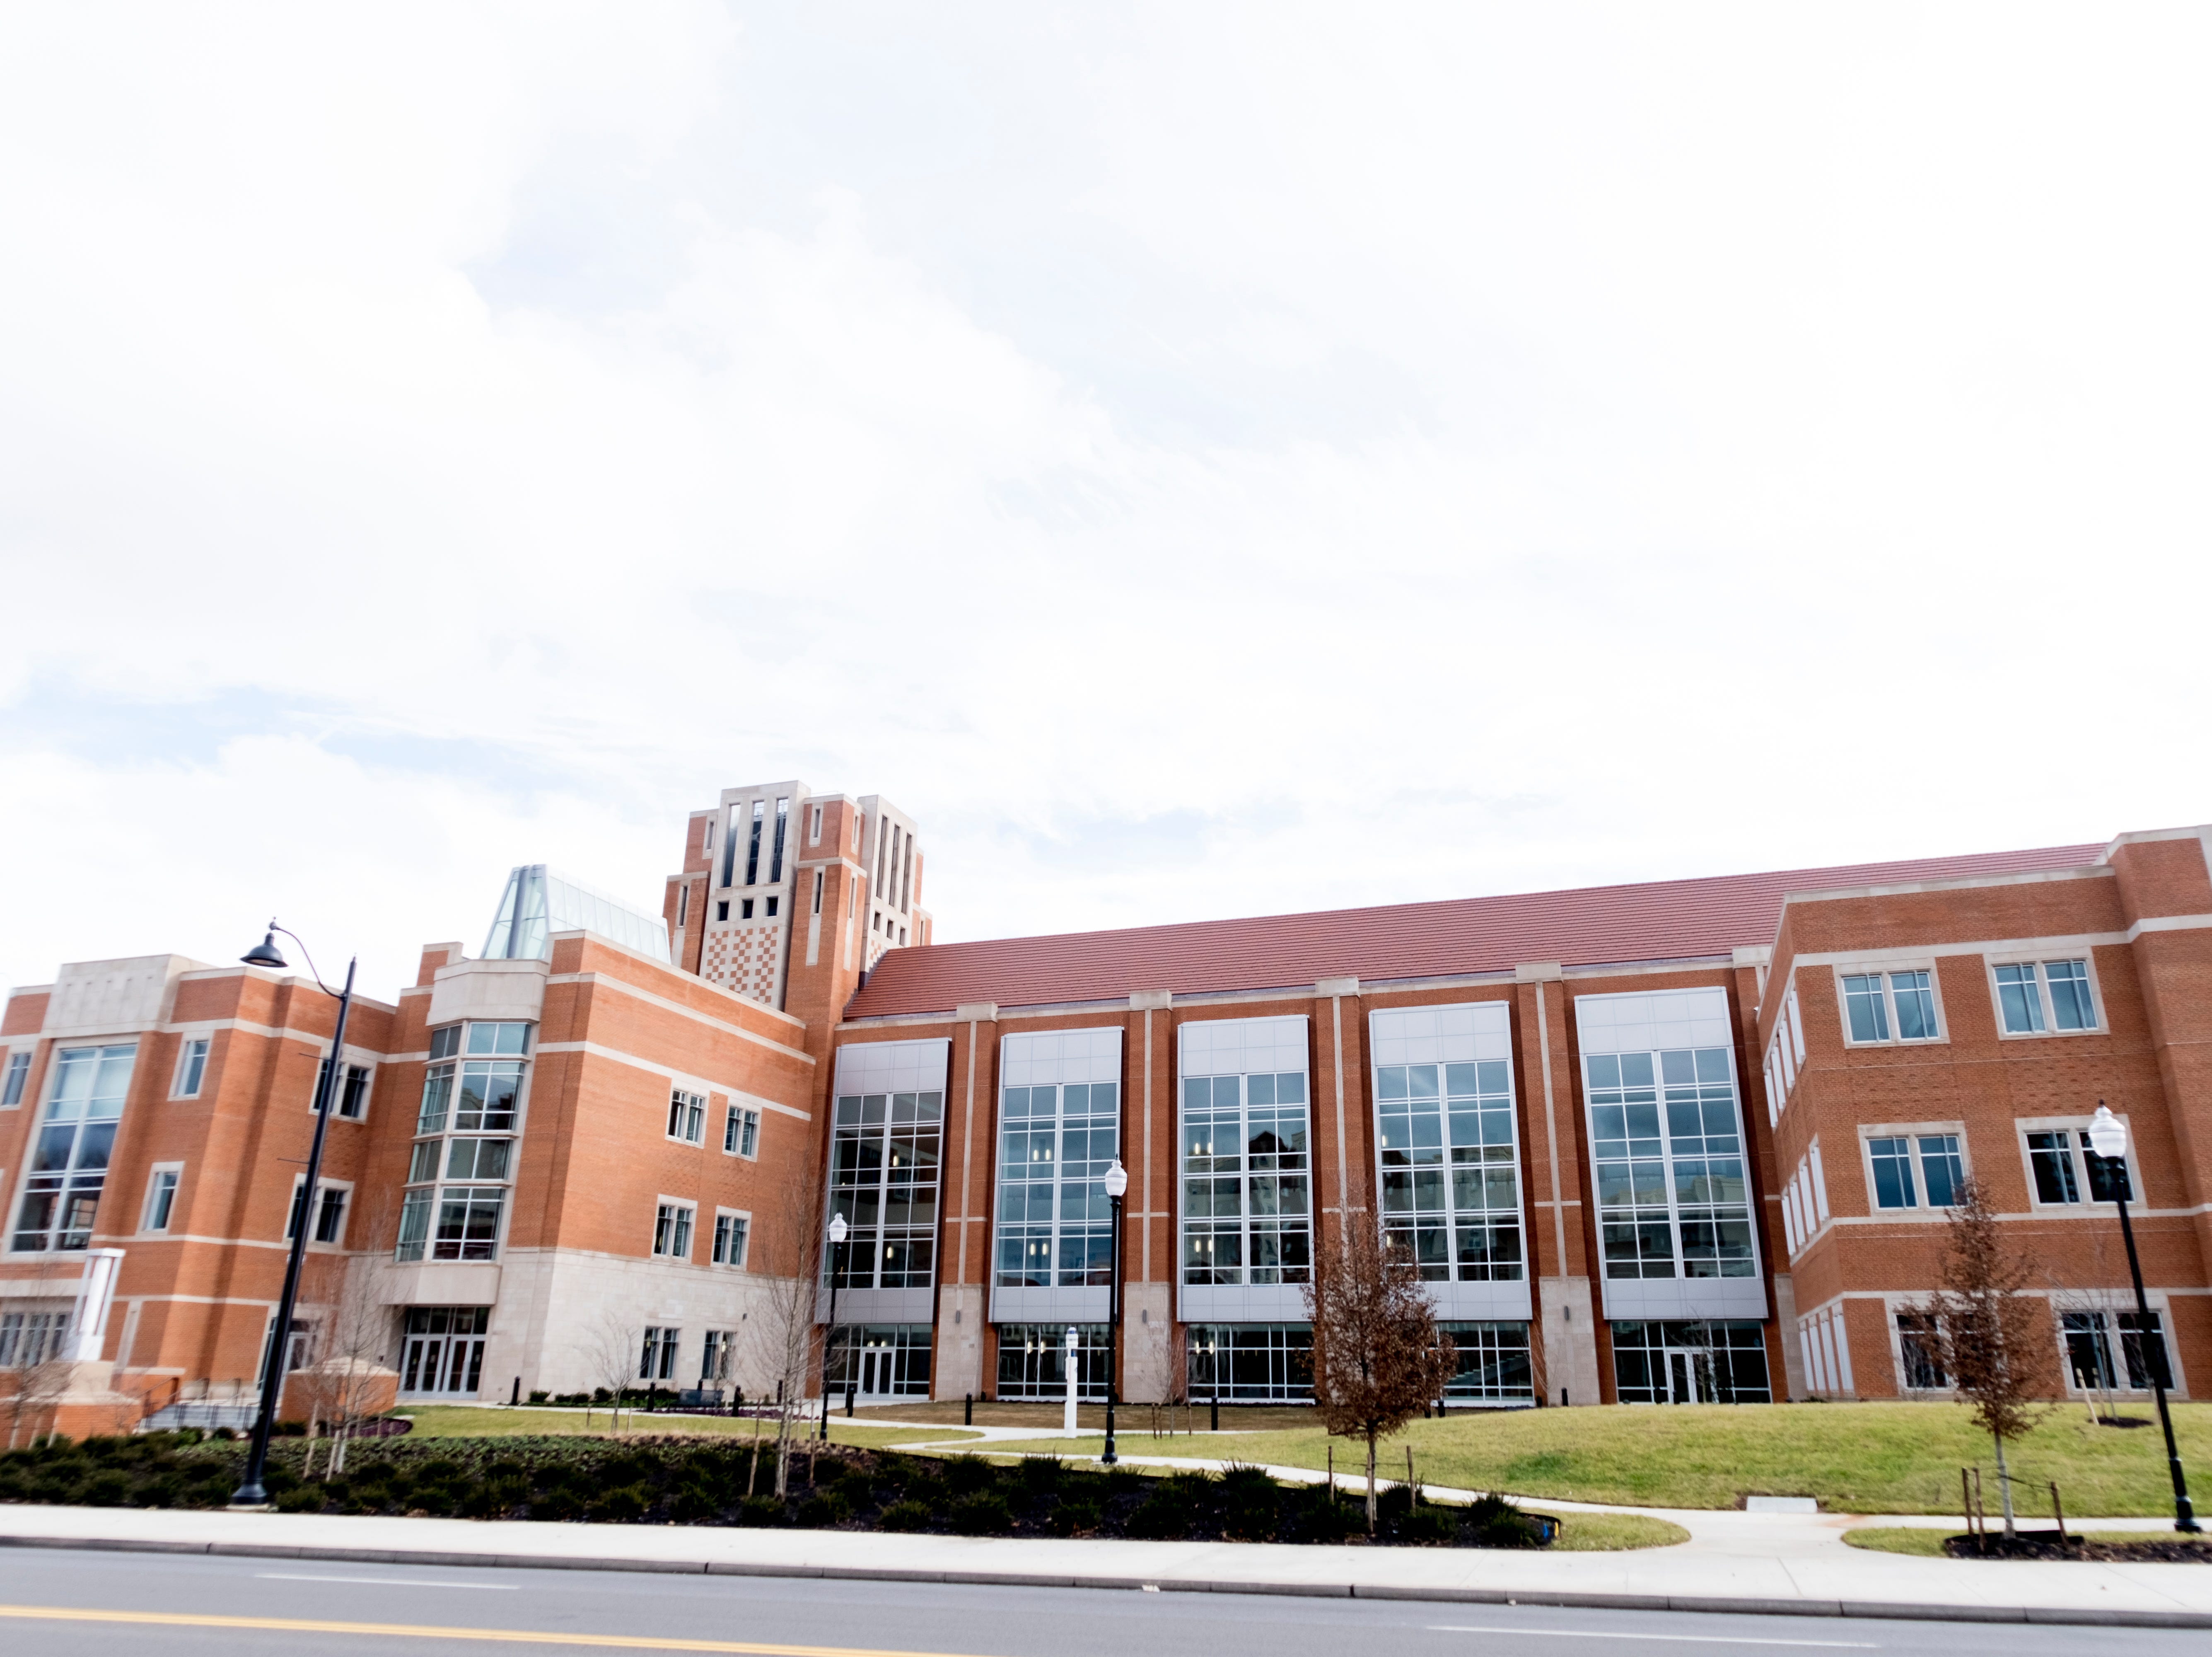 The new University of Tennessee Student Union is set to open on the UTK campus in Knoxville, Tennessee on Tuesday, January 1, 2019.